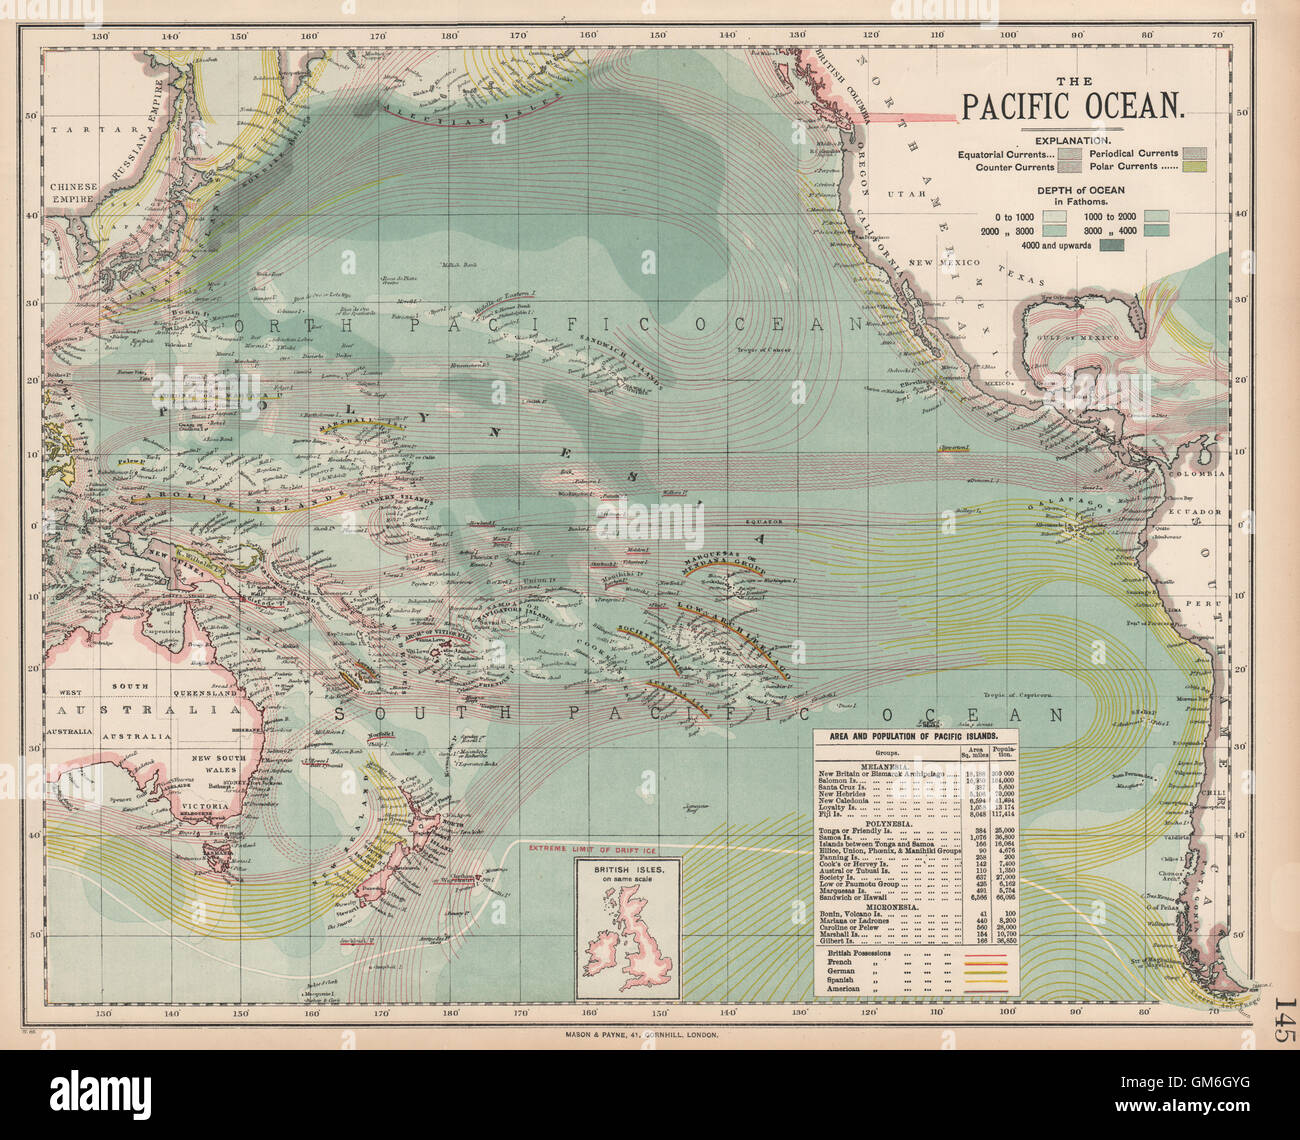 Pacific Ocean Currents British French German Us Spanish Colonies - Pacific-ocean-on-us-map